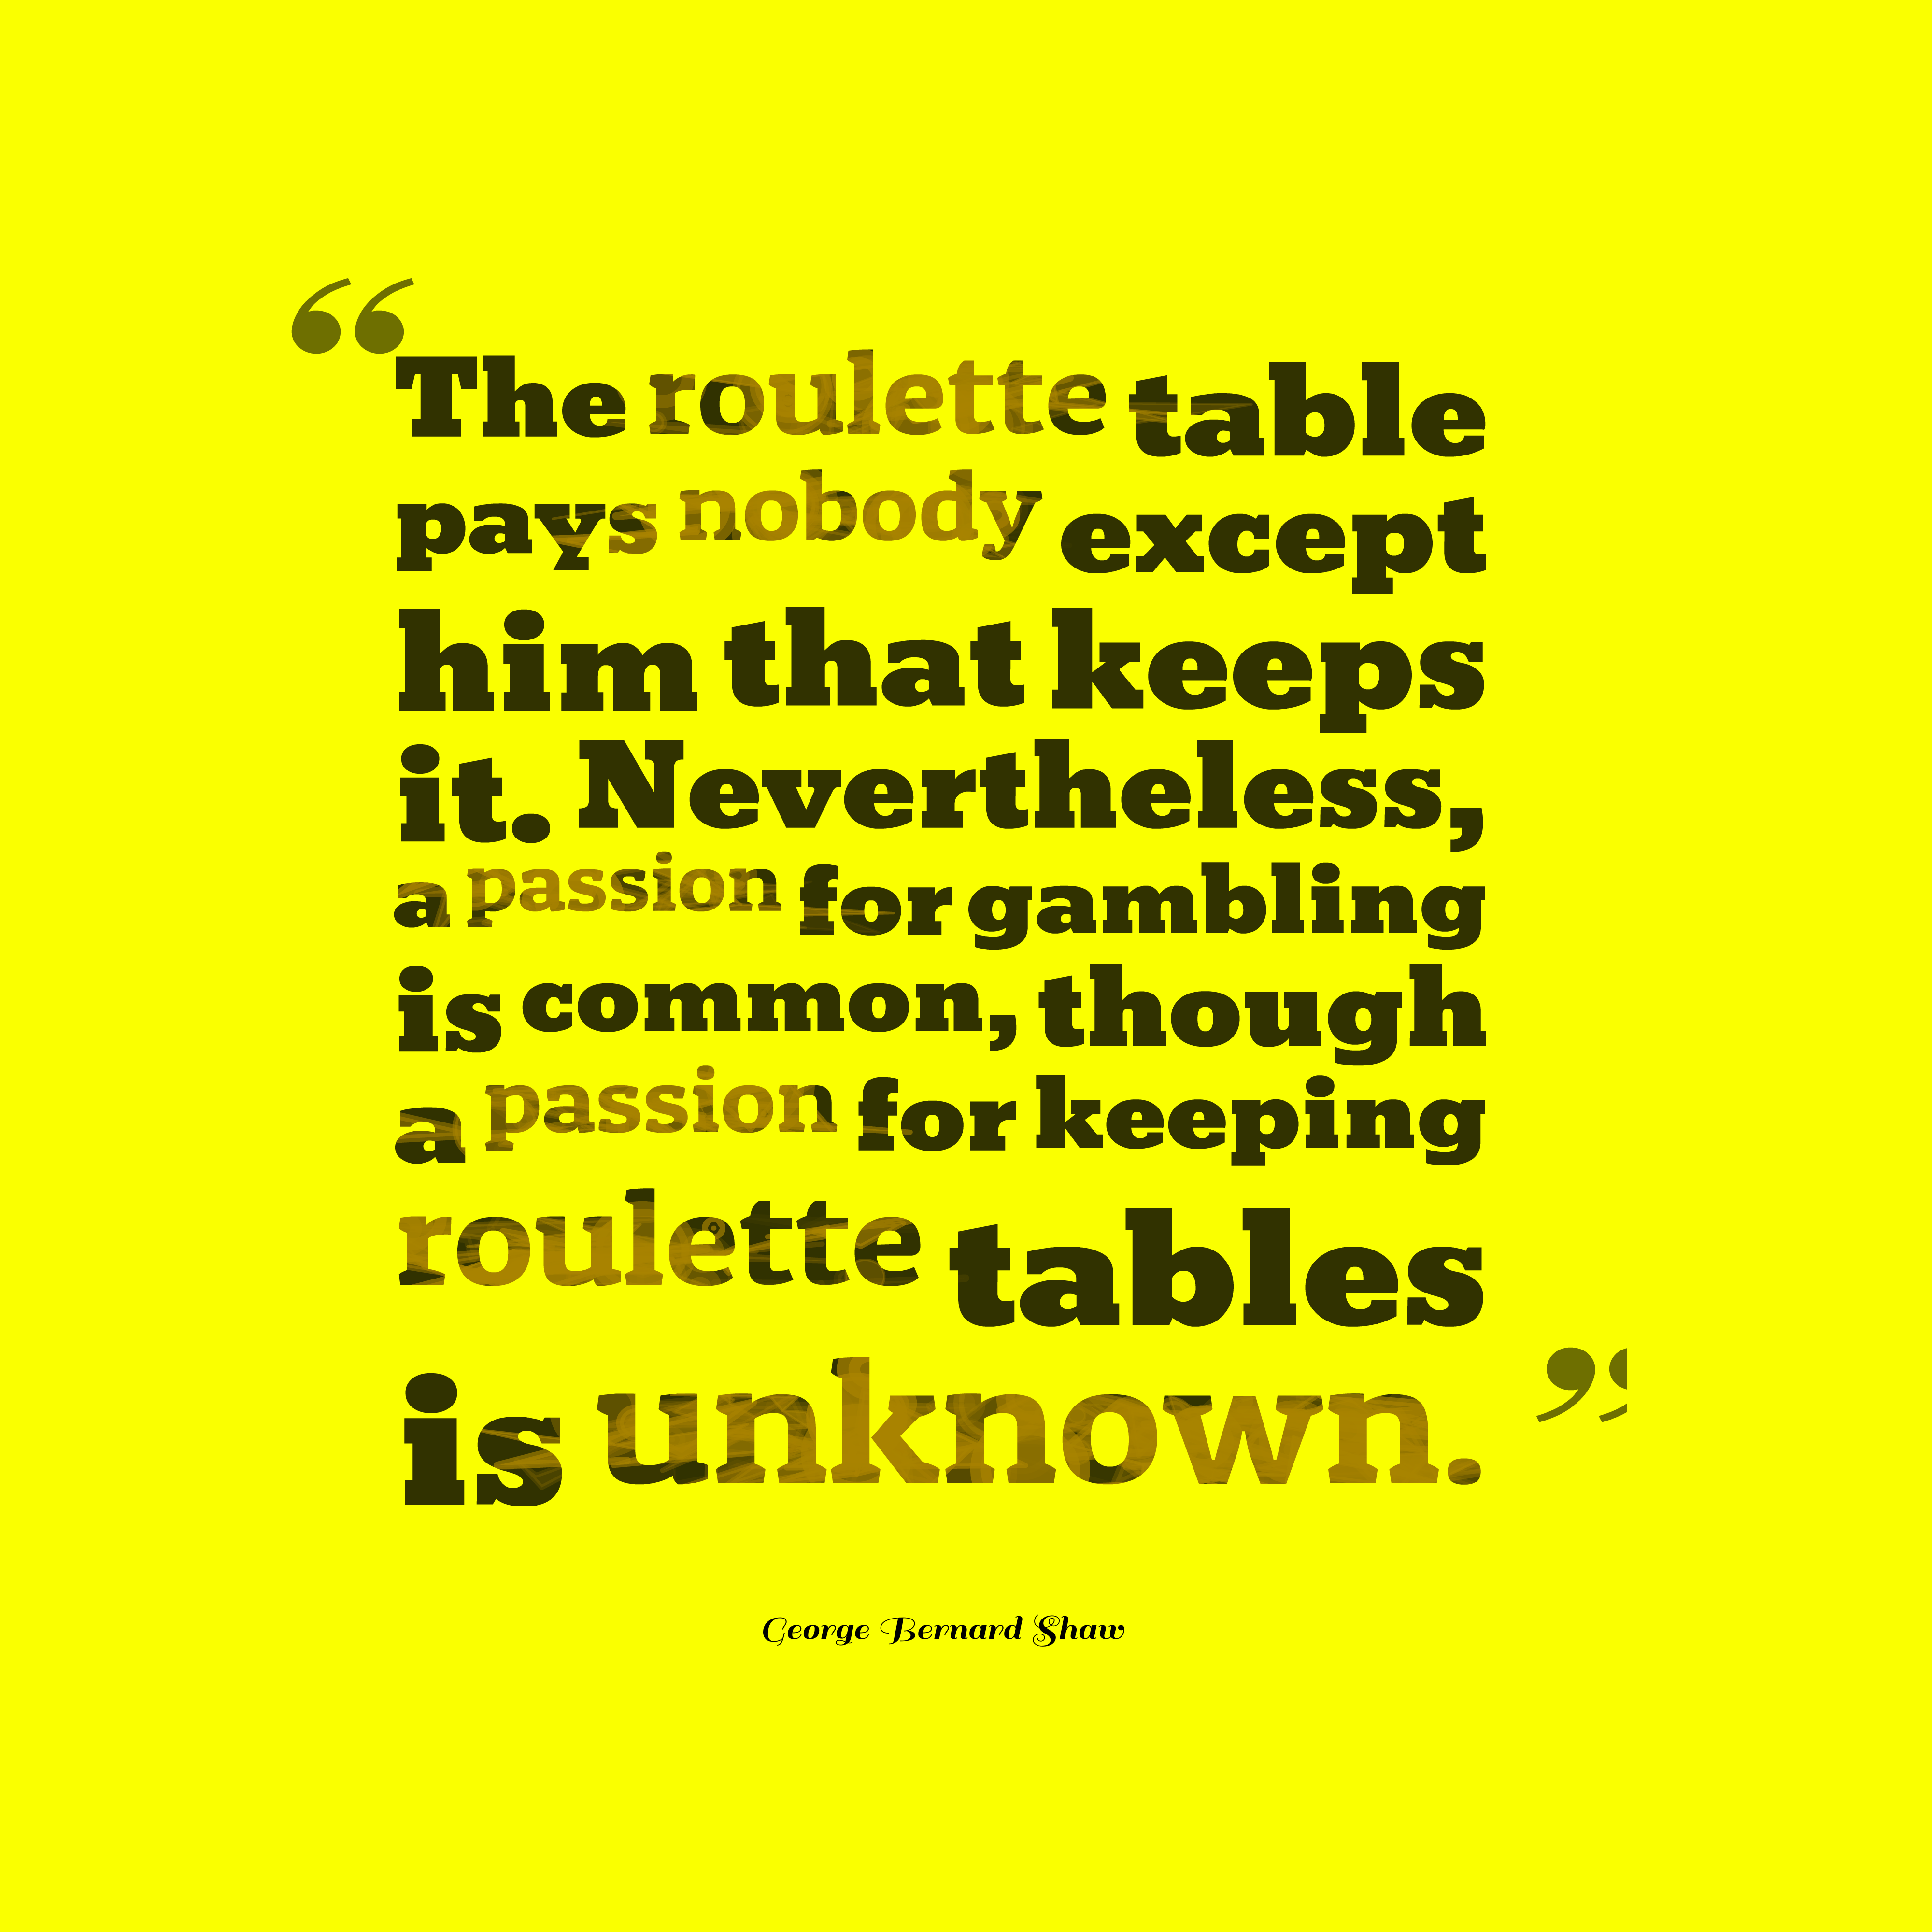 Quotes image of The roulette table pays nobody except him that keeps it. Nevertheless, a passion for gambling is common, though a passion for keeping roulette tables is unknown.